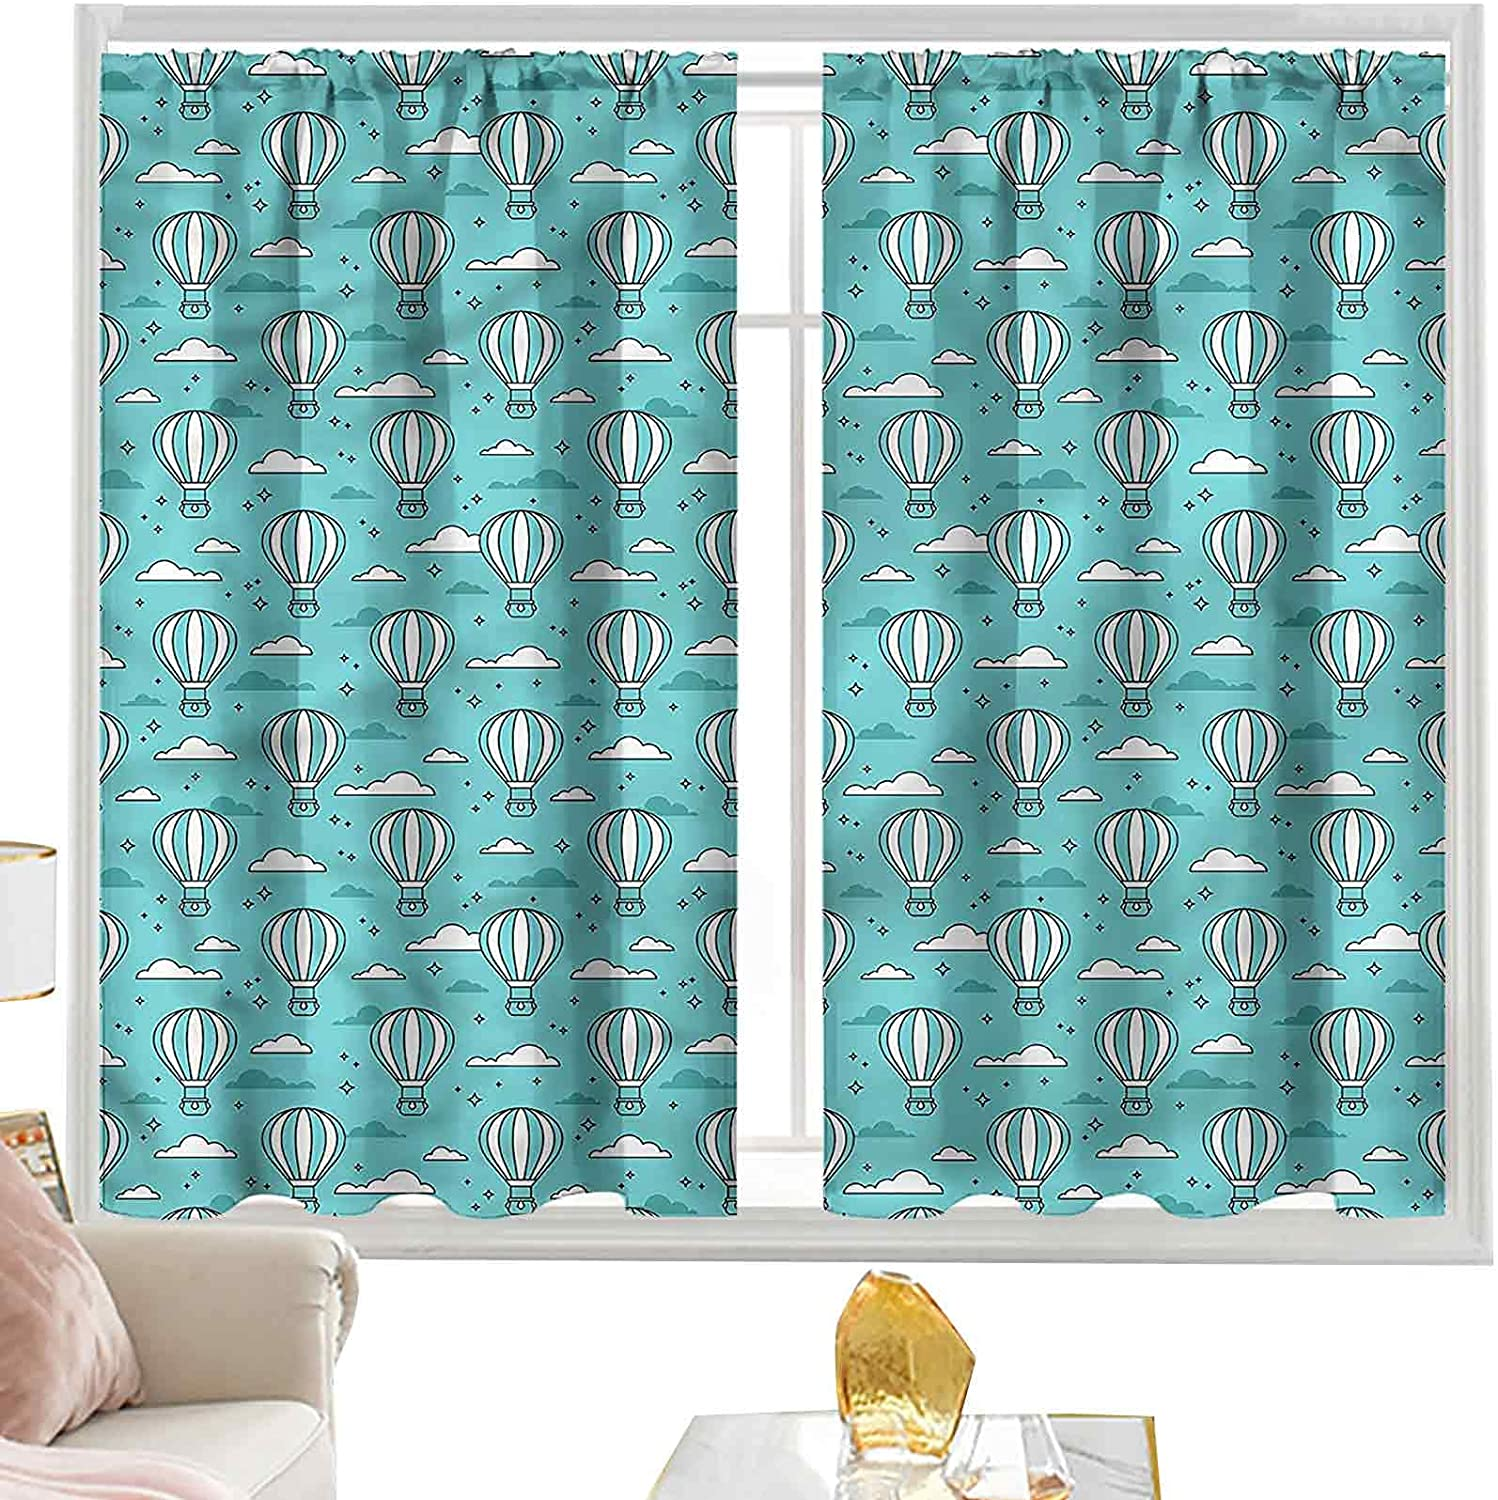 Max 68% OFF Thermal Curtains Turquoise and White Air Ranking TOP3 Balloon I L63 x W42 Sky